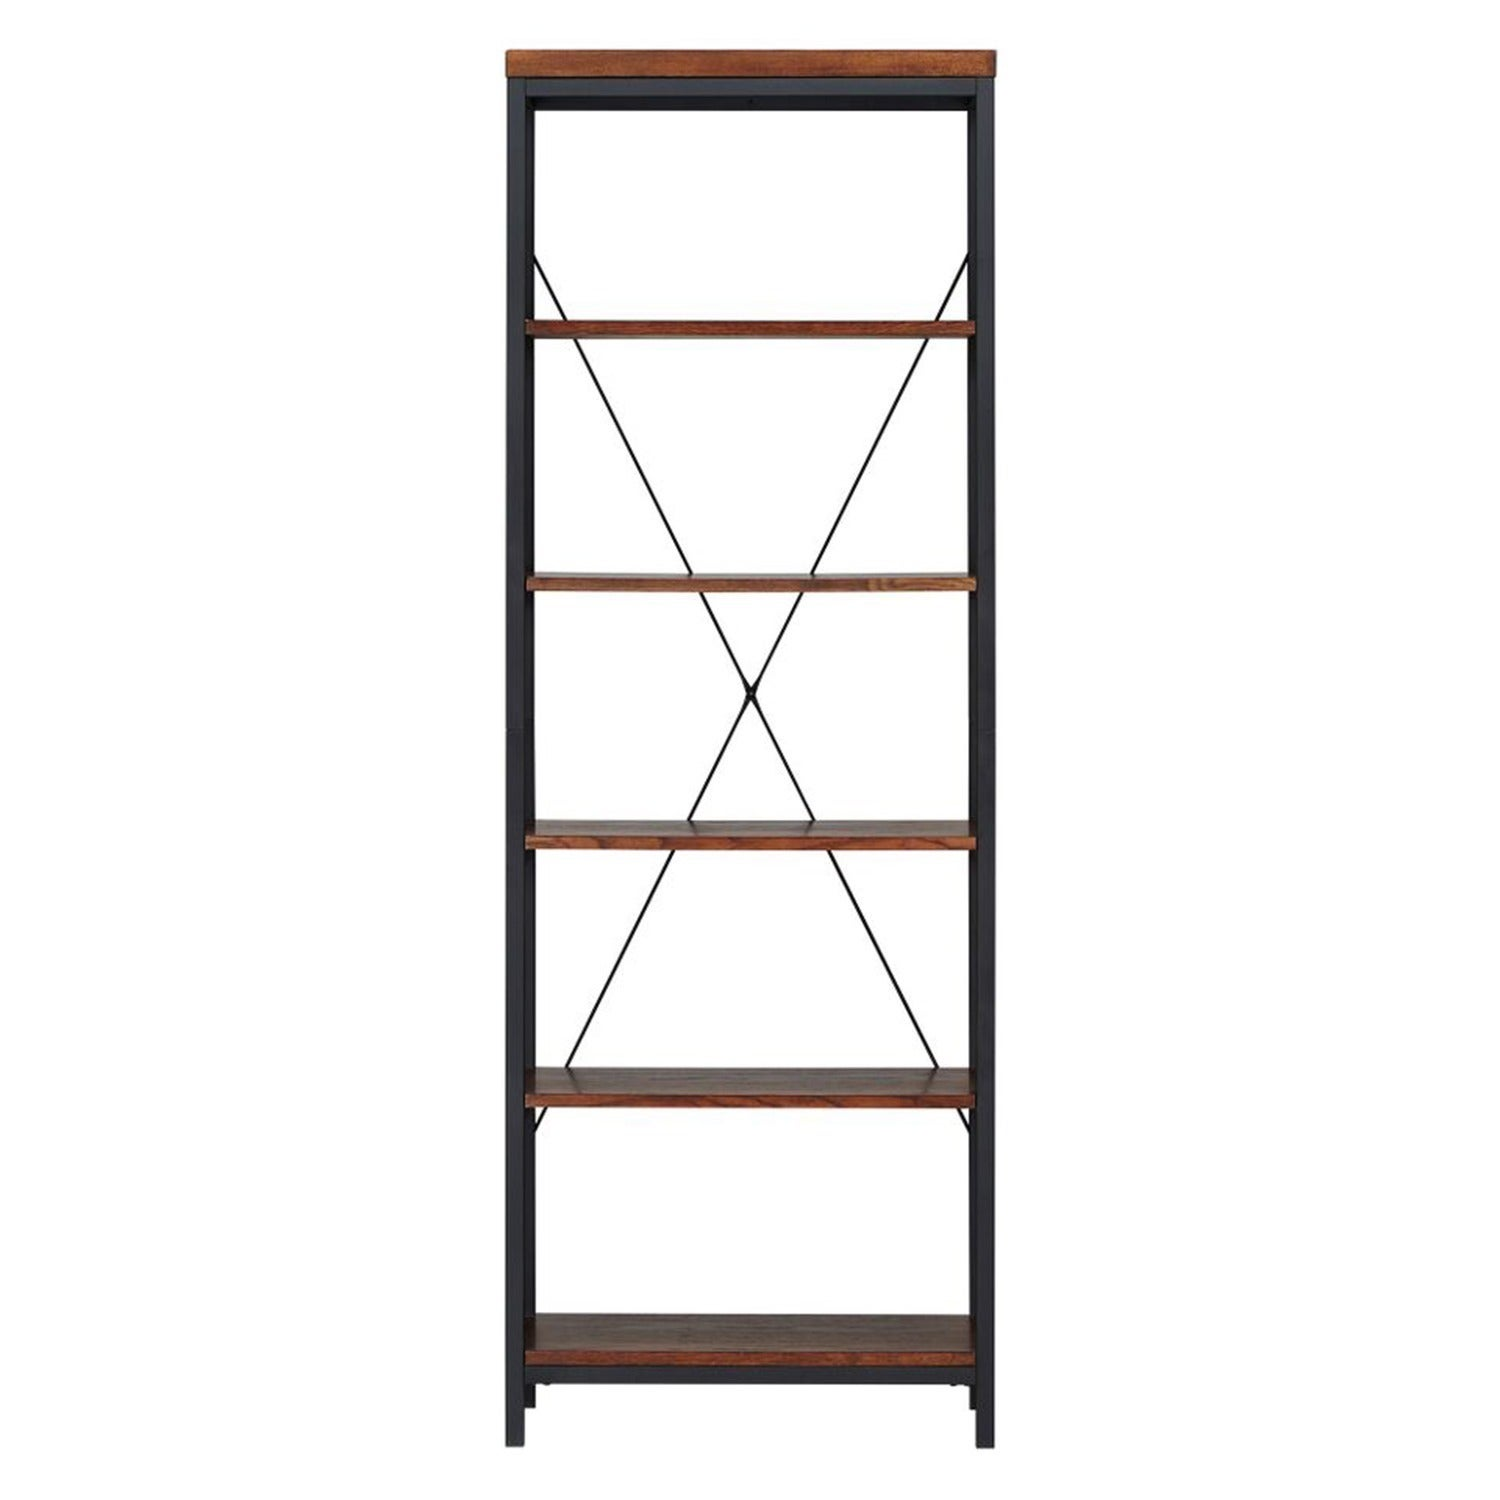 Shop Somme Rustic Metal Frame 6 Tier Bookshelf Media Tower By INSPIRE Q Classic